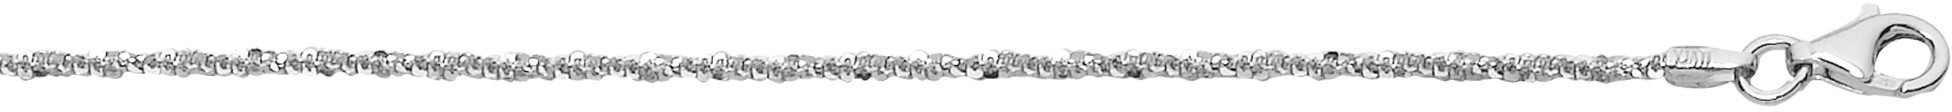 "20"" 1.5mm (0.06"") Diamond Cut 925 Sterling Silver Sparkle Chain w/ Pear Shape Clasp - DISCONTINUED"